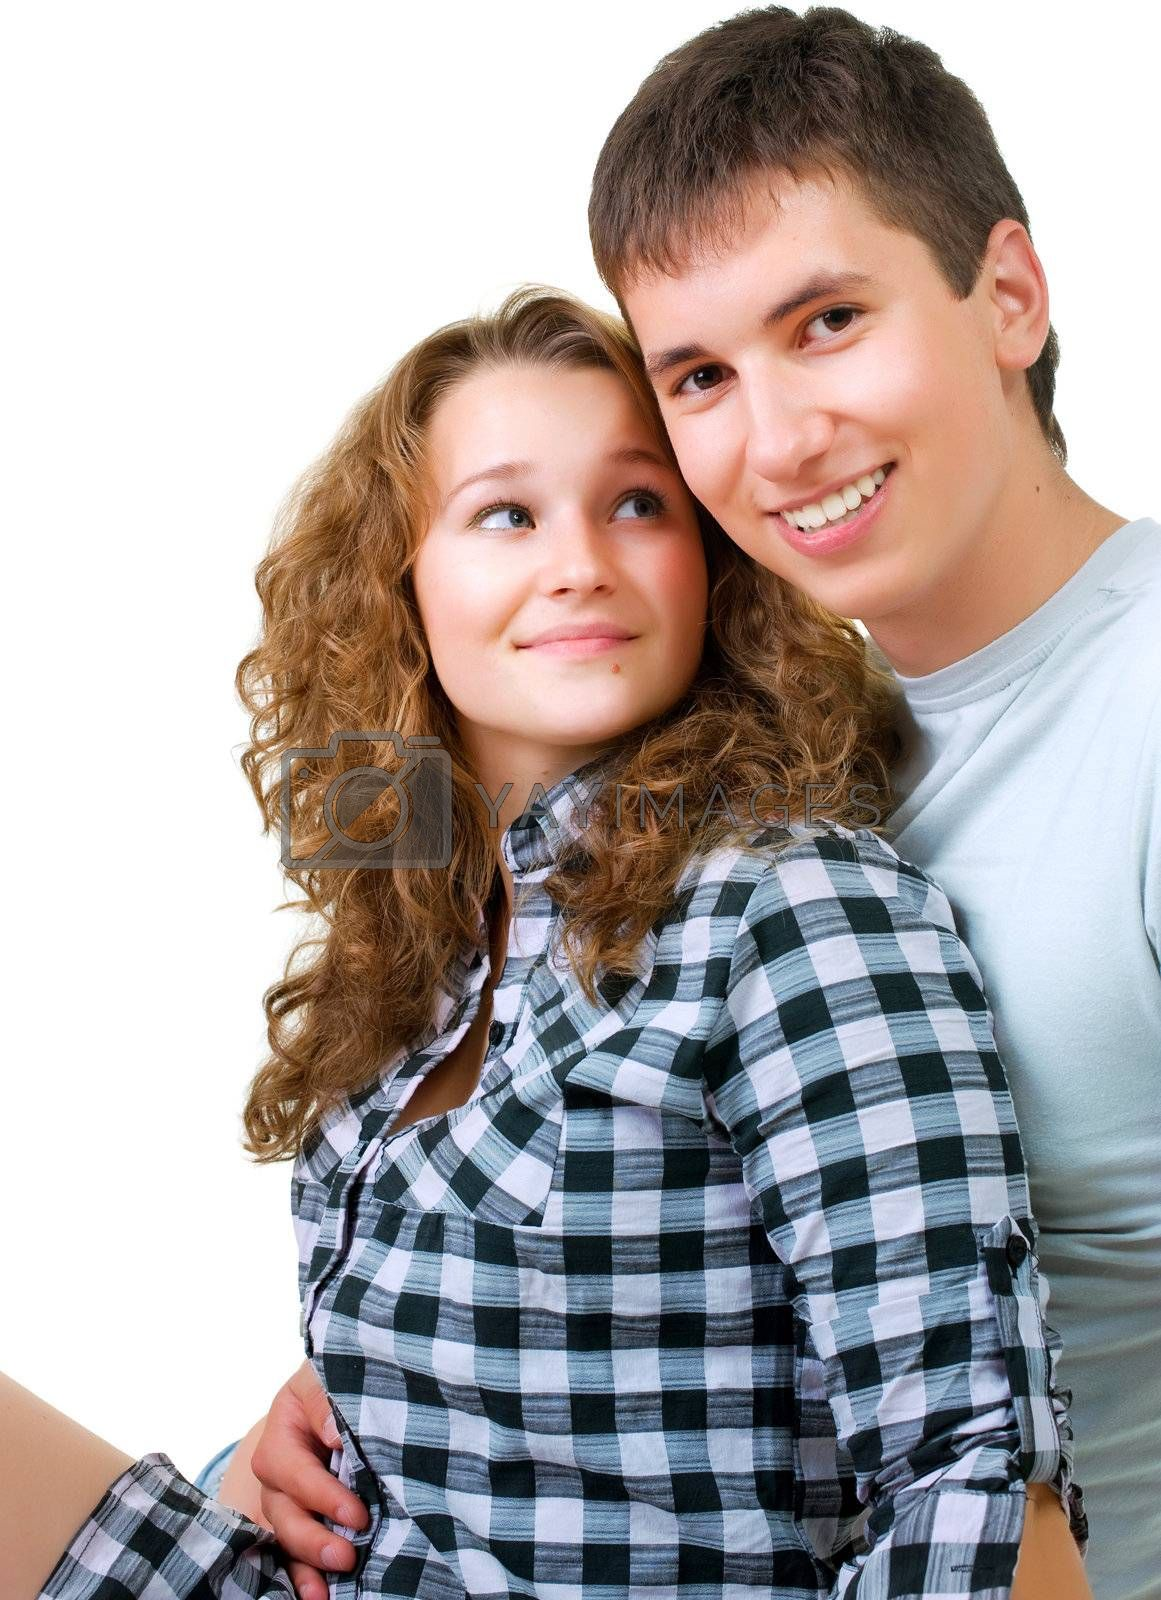 Healthy Young Couple Portrait by Subbotina Anna